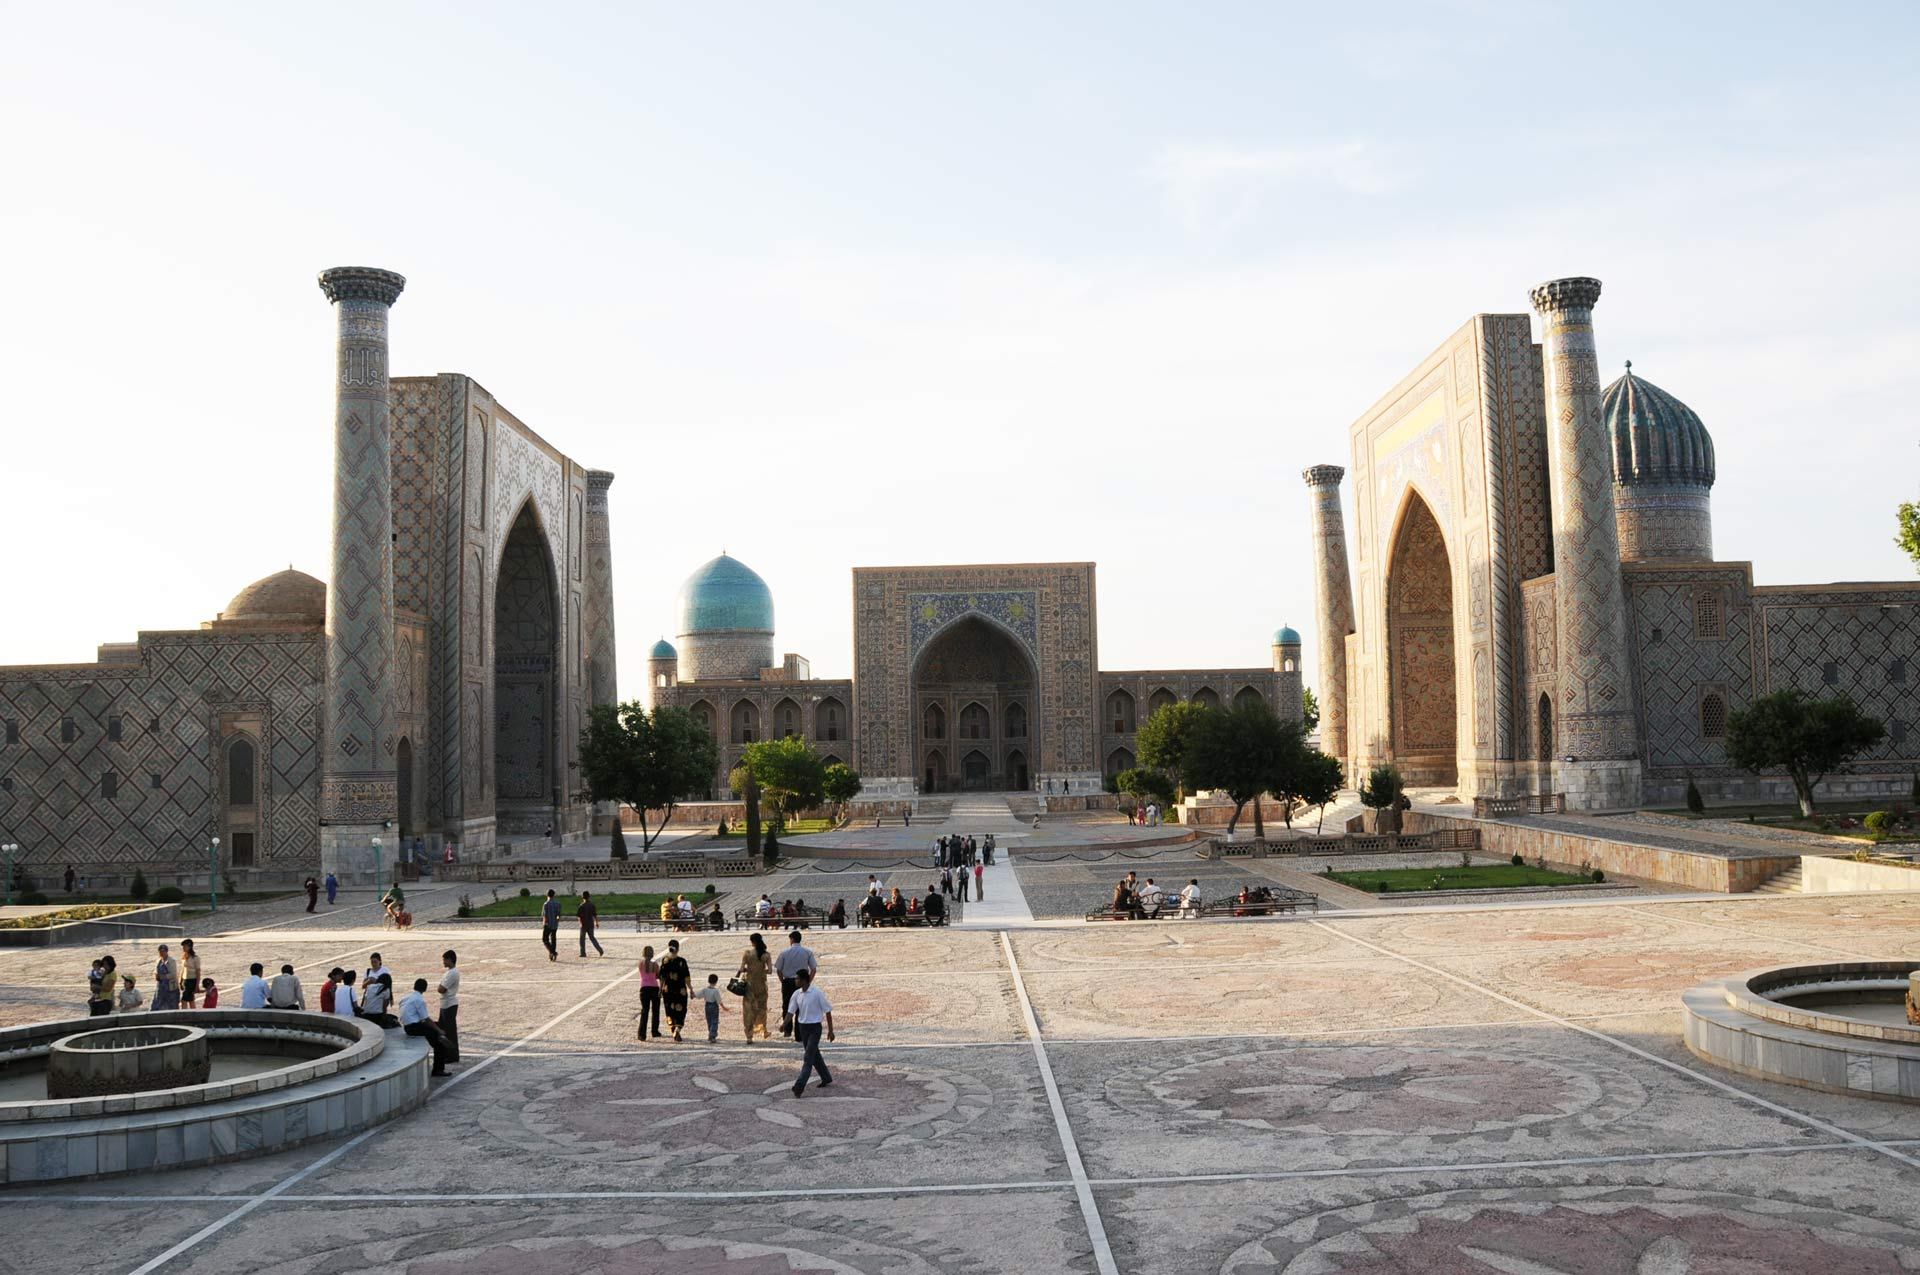 The Registan, the heart of the ancient city of Samarkand